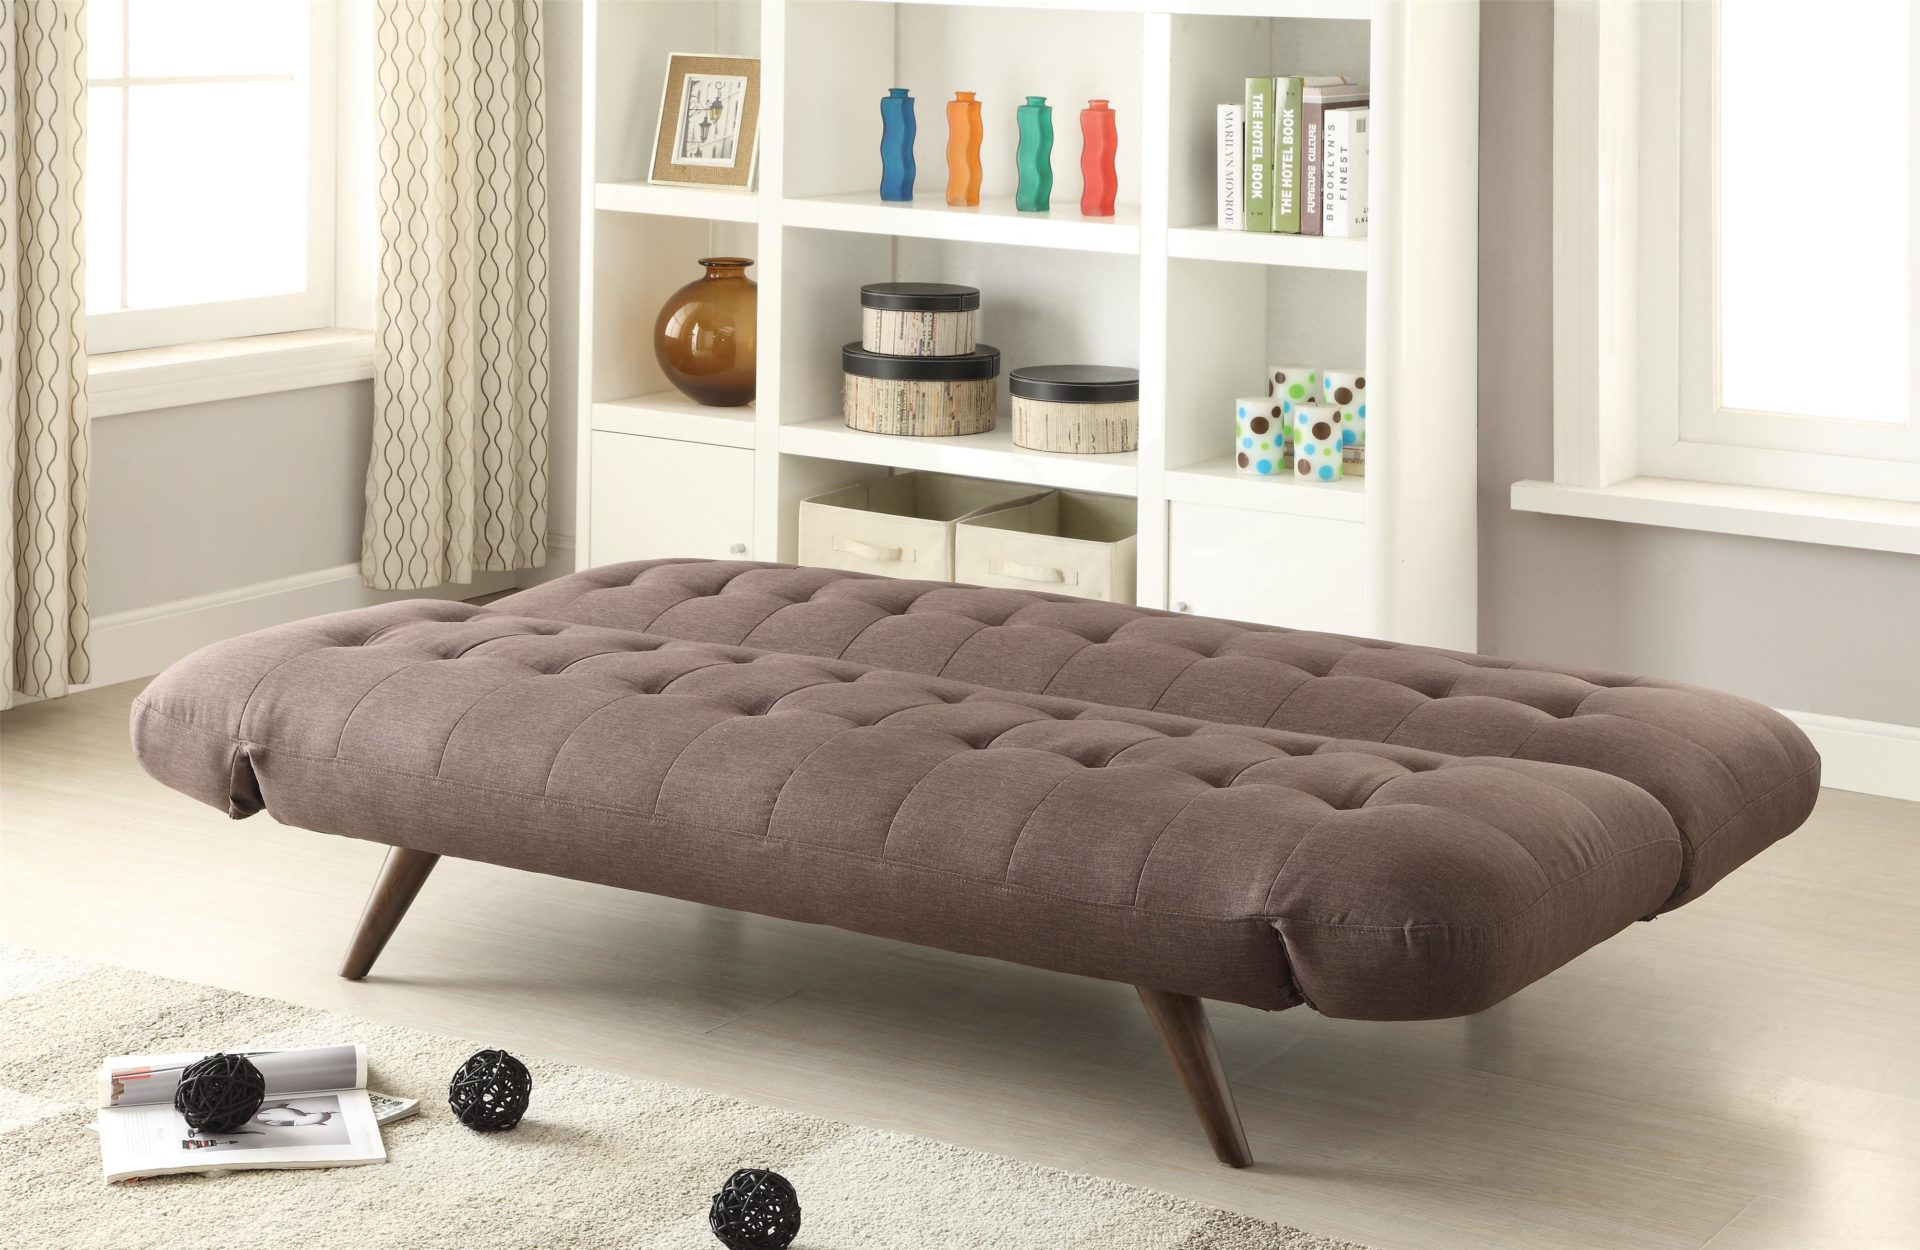 Retro Sofa Wood Retro Modern Sofa Bed With Tufting Cone Legs